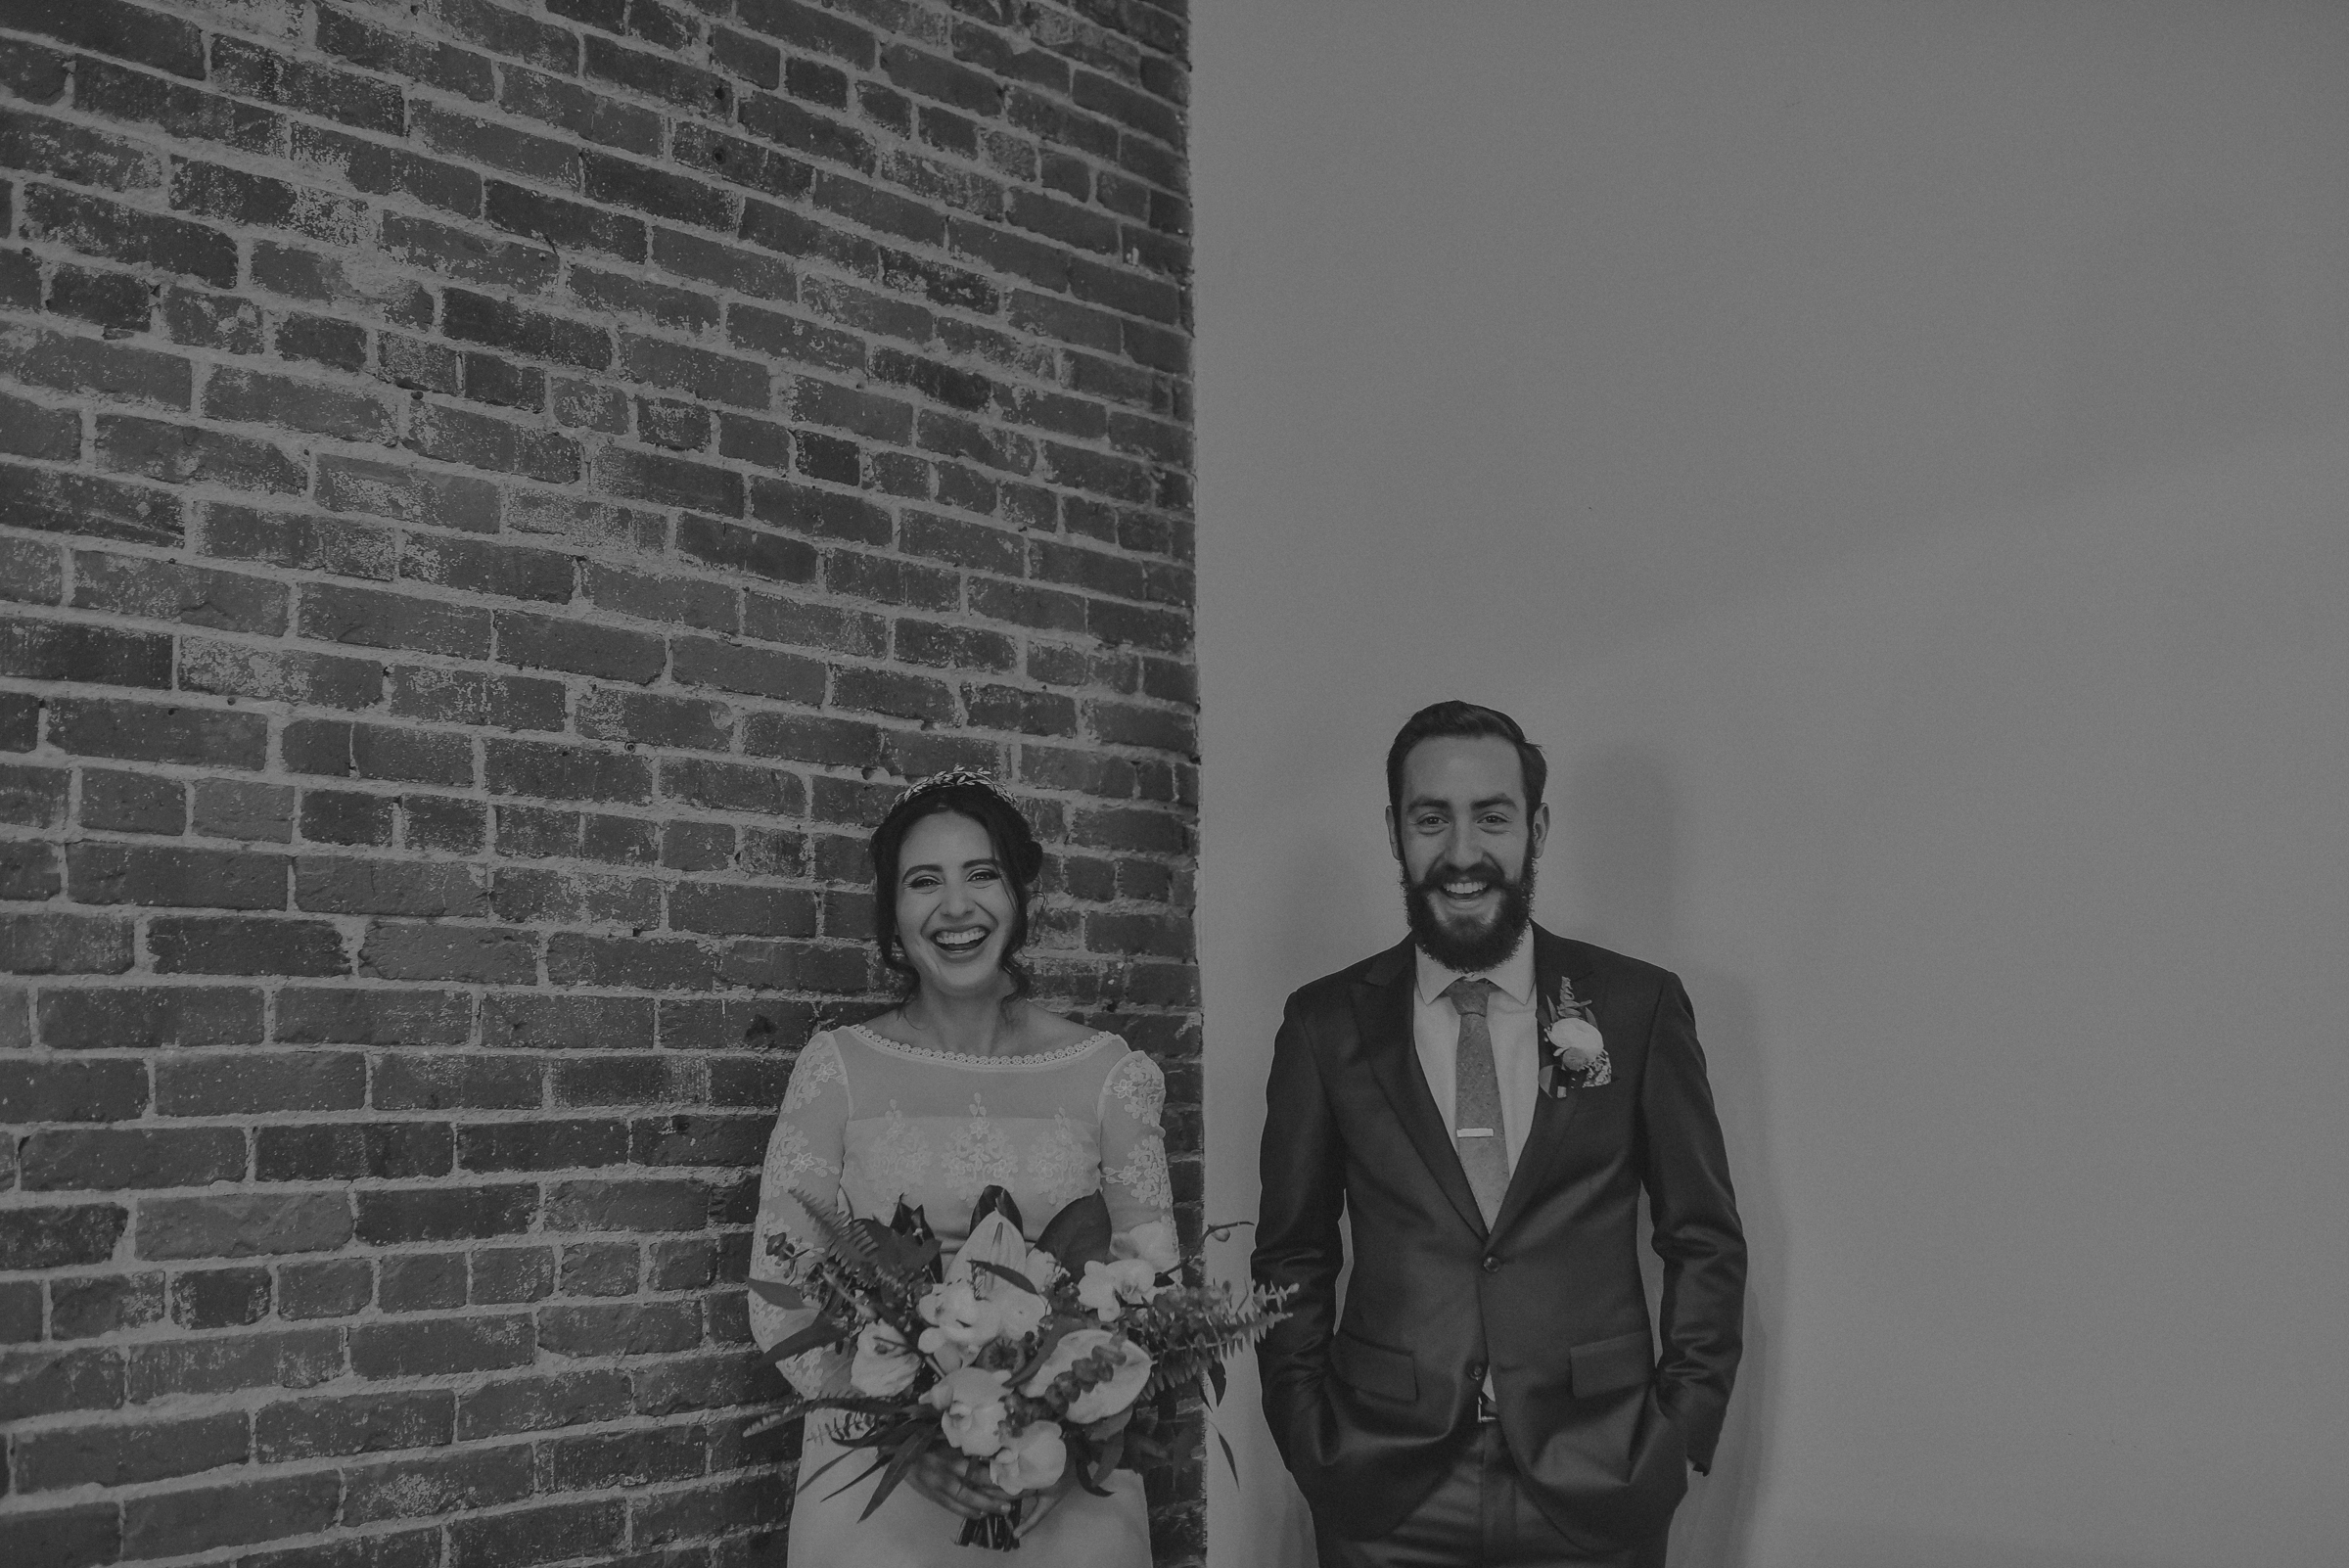 Isaiah + Taylor Photography - The Unique Space Wedding, Los Angeles Wedding Photography 079.jpg